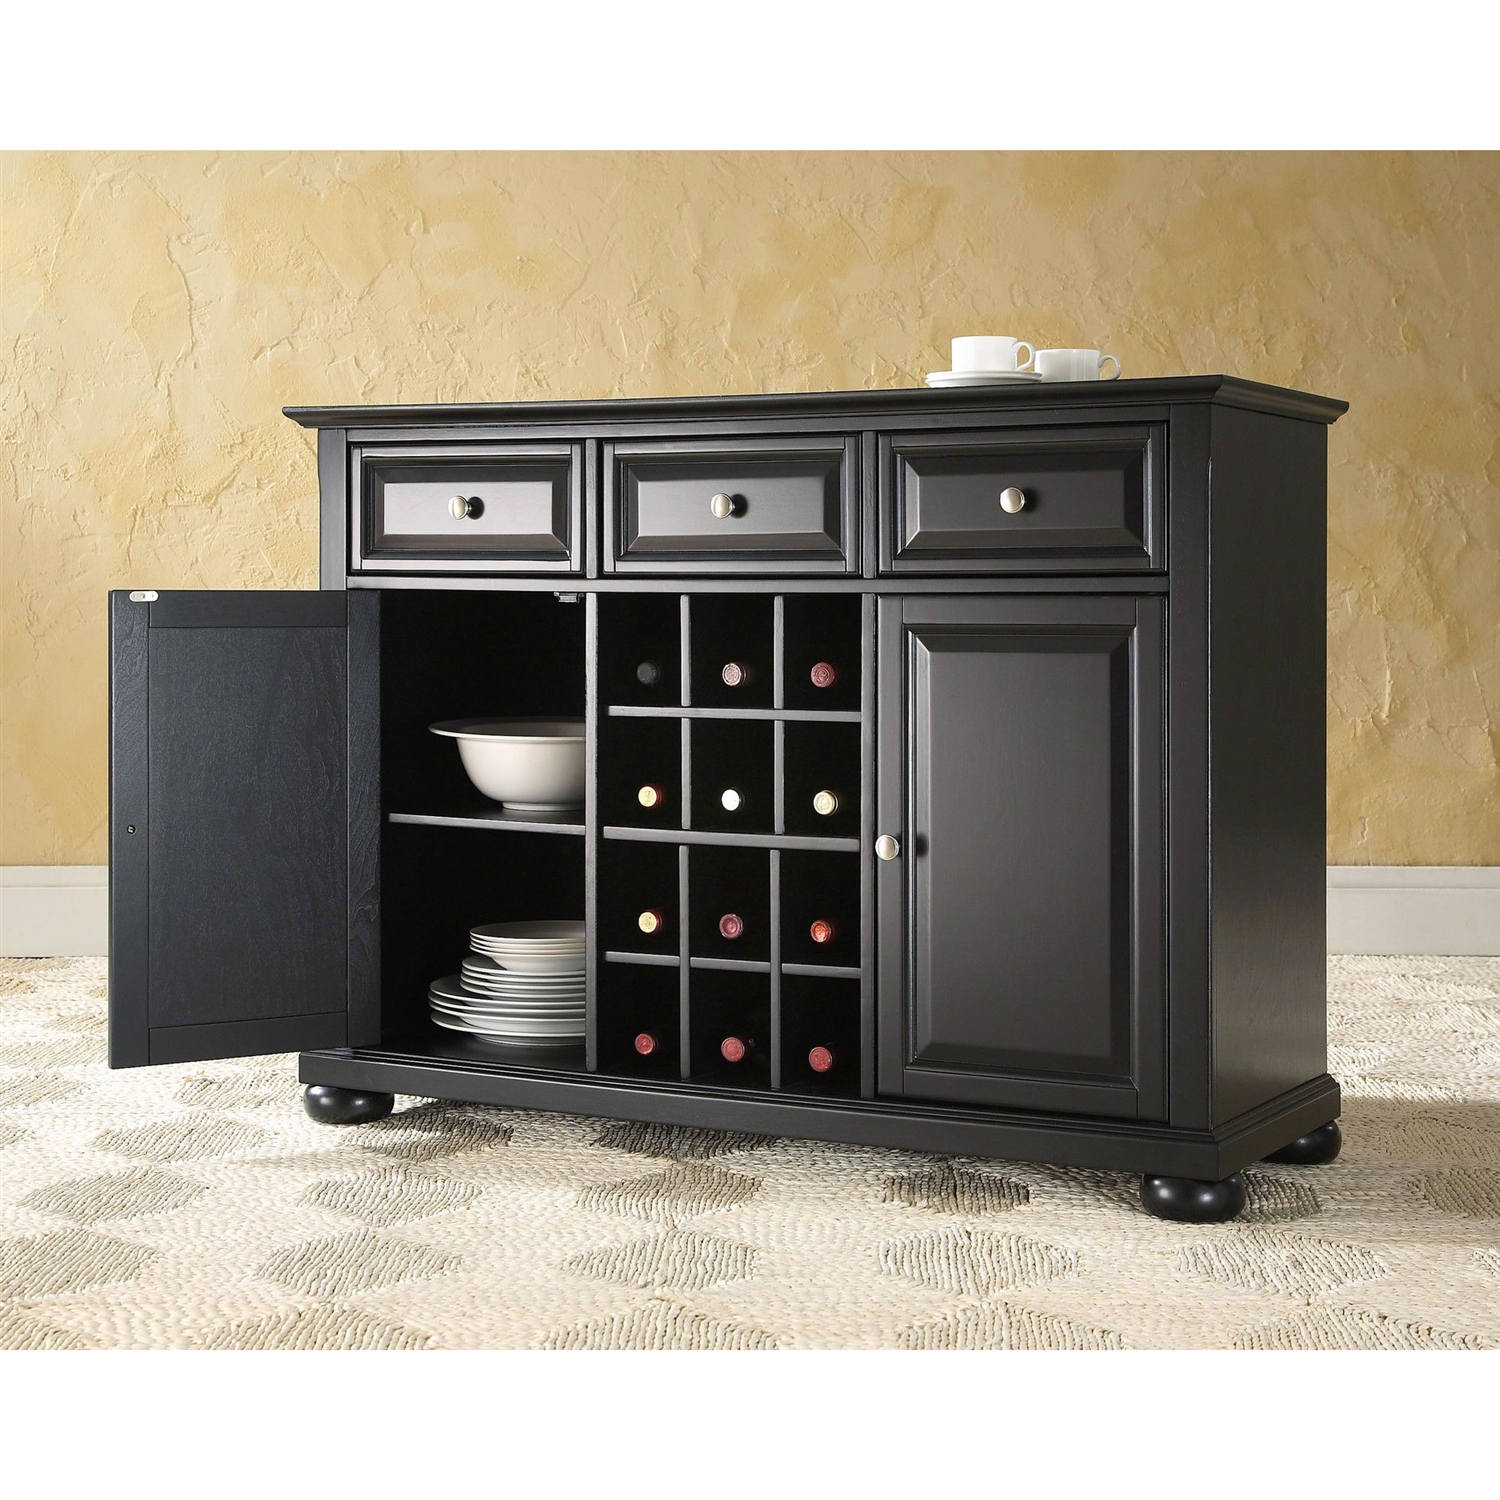 wood sideboard buffet dining serving table & cabinet